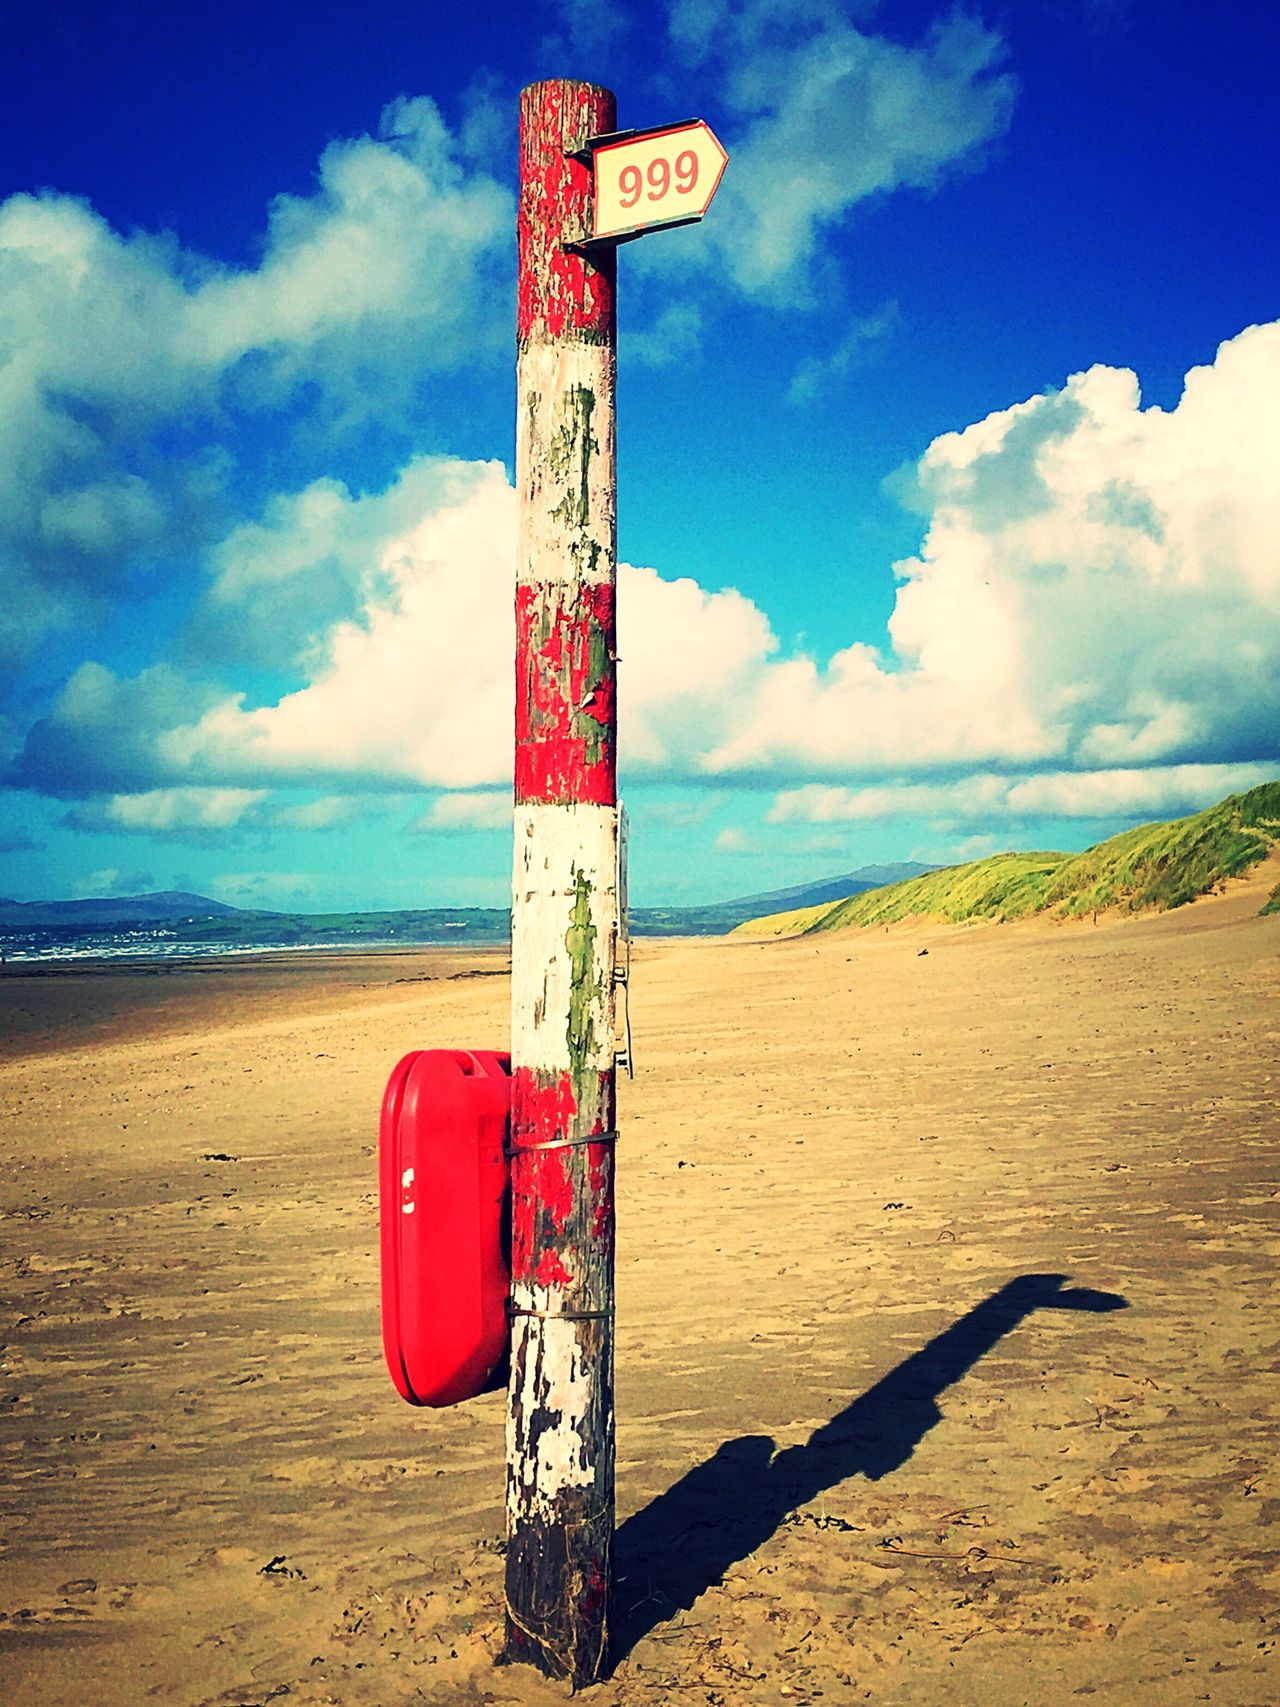 Harlech Beach Harlech Wales❤ Wales UK Walesonline Information Sign Shore Gwynedd Wooden Post Pole 999 Sos Red And White Beach Photography Beach View Beach Life Emergency Emergency Services Emergency Equipment Signpost Arrow Sign